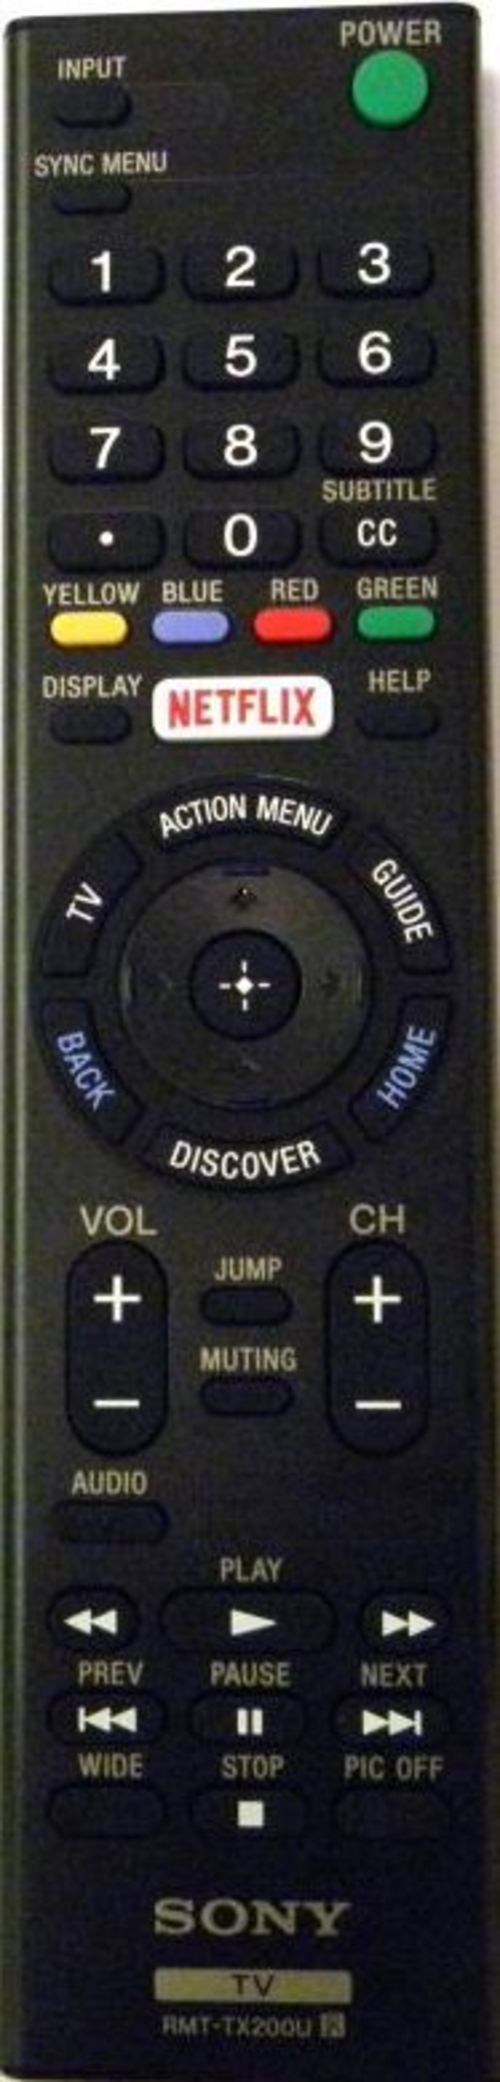 Sony RMT-TX200U TV Remote Control - Battery Required - Black